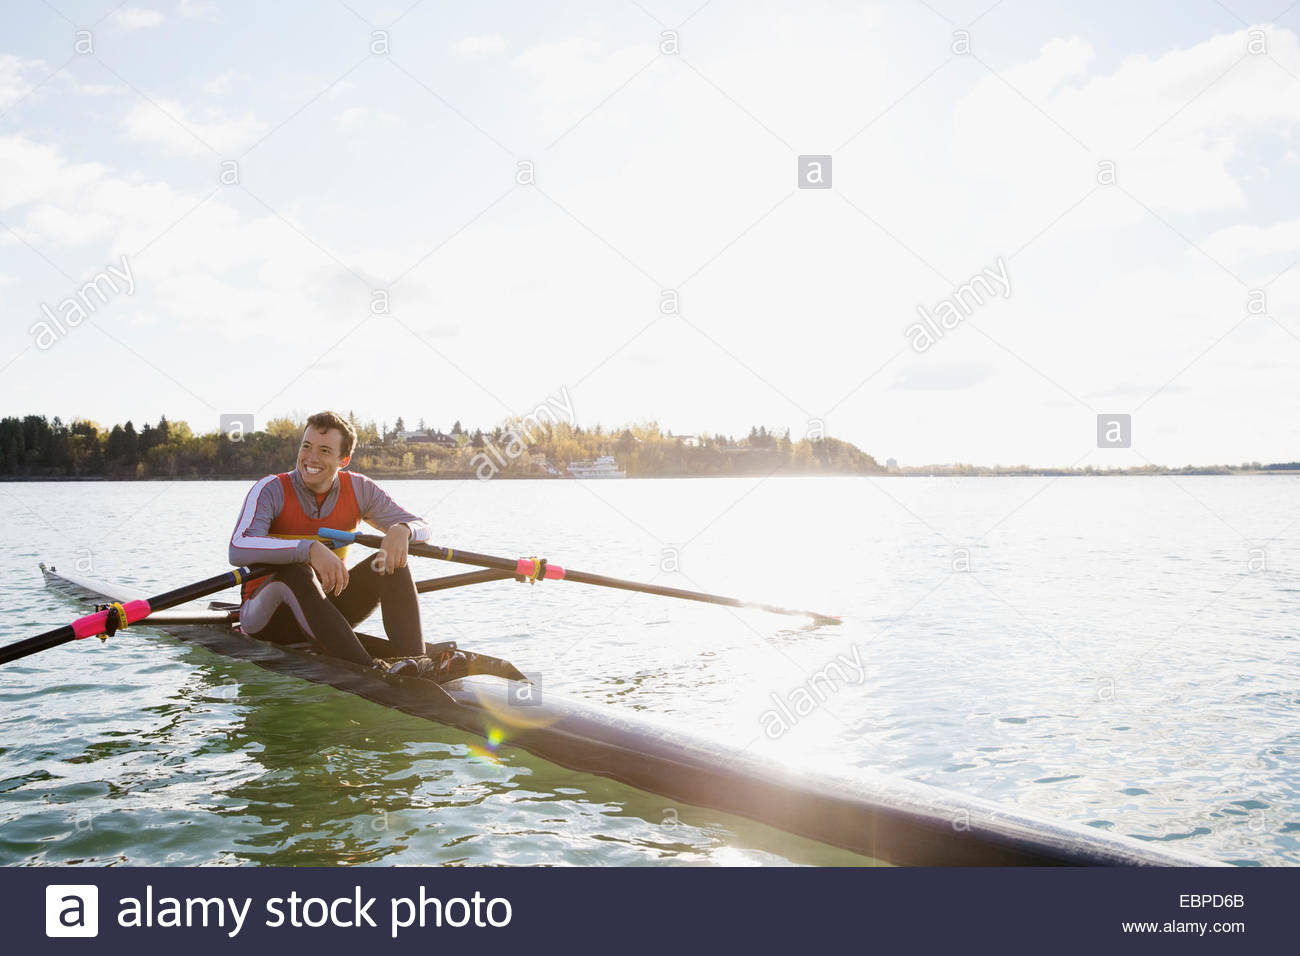 Smiling rower in scull on river - Stock Image